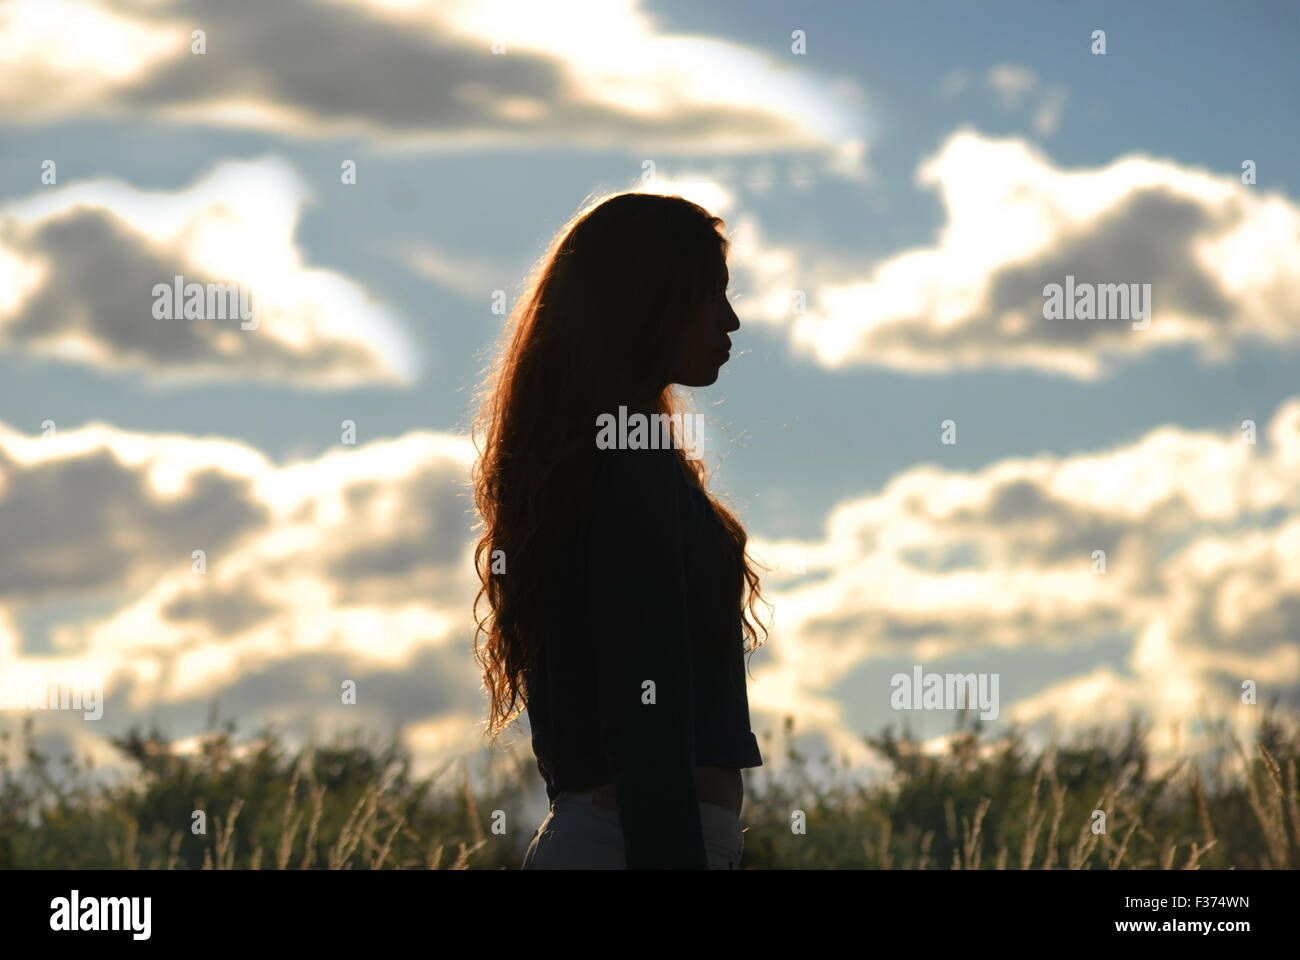 Shadow of a girl with a cloudy sky behind - Stock Image